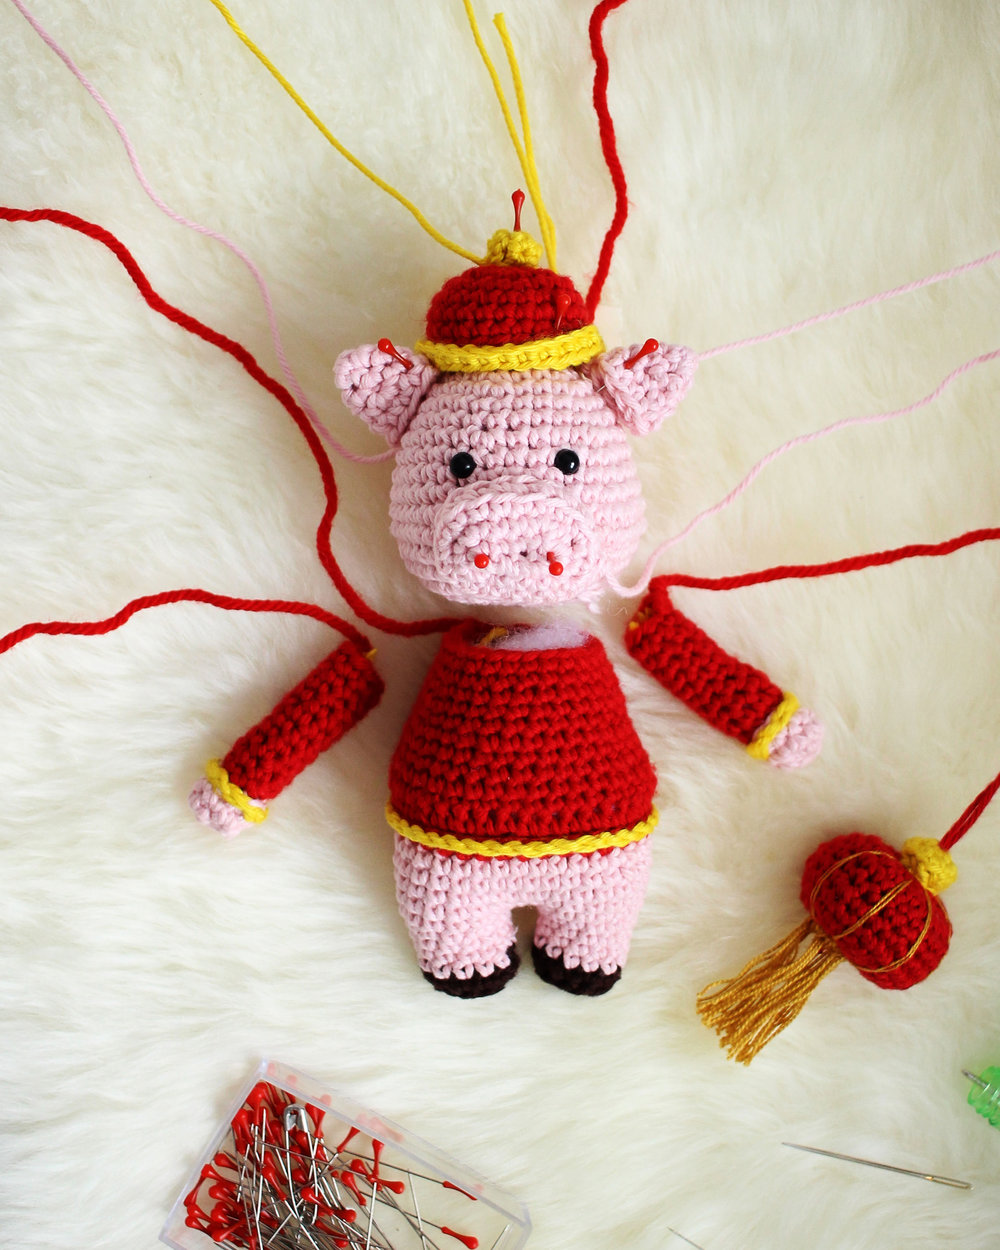 Chinese New Year Pig Crochet Assembly